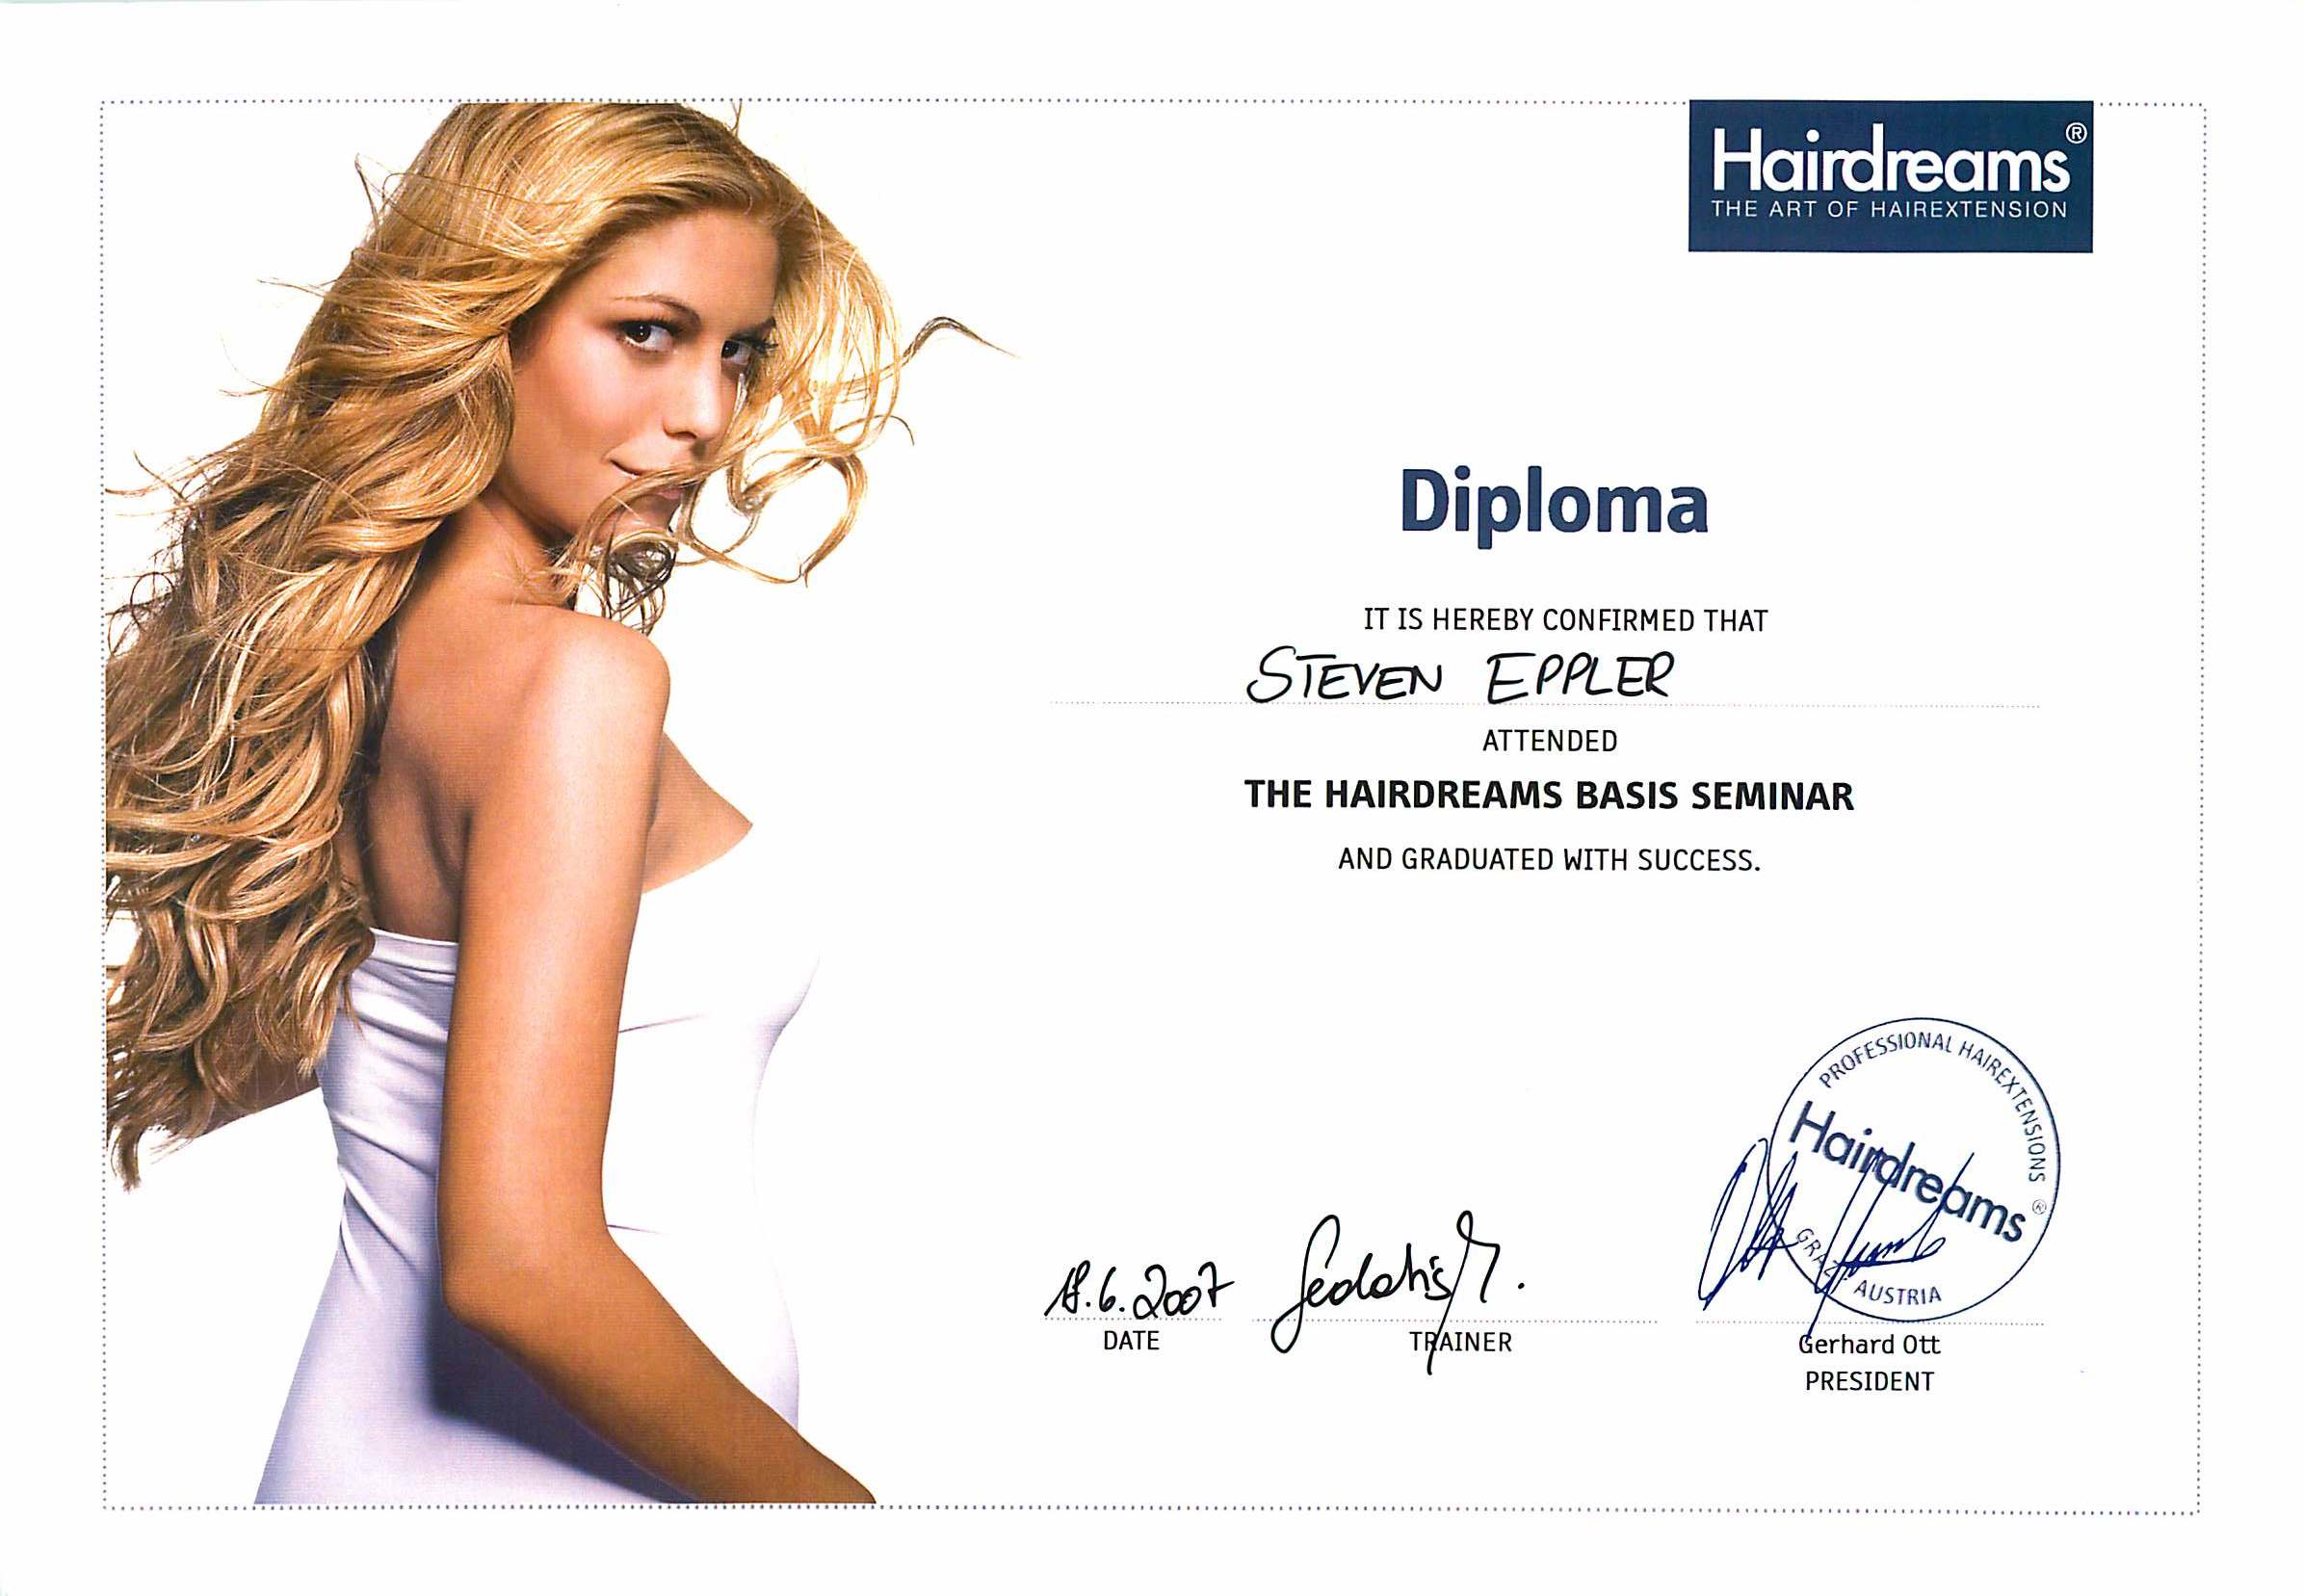 Diploma Hairdreams Extensions